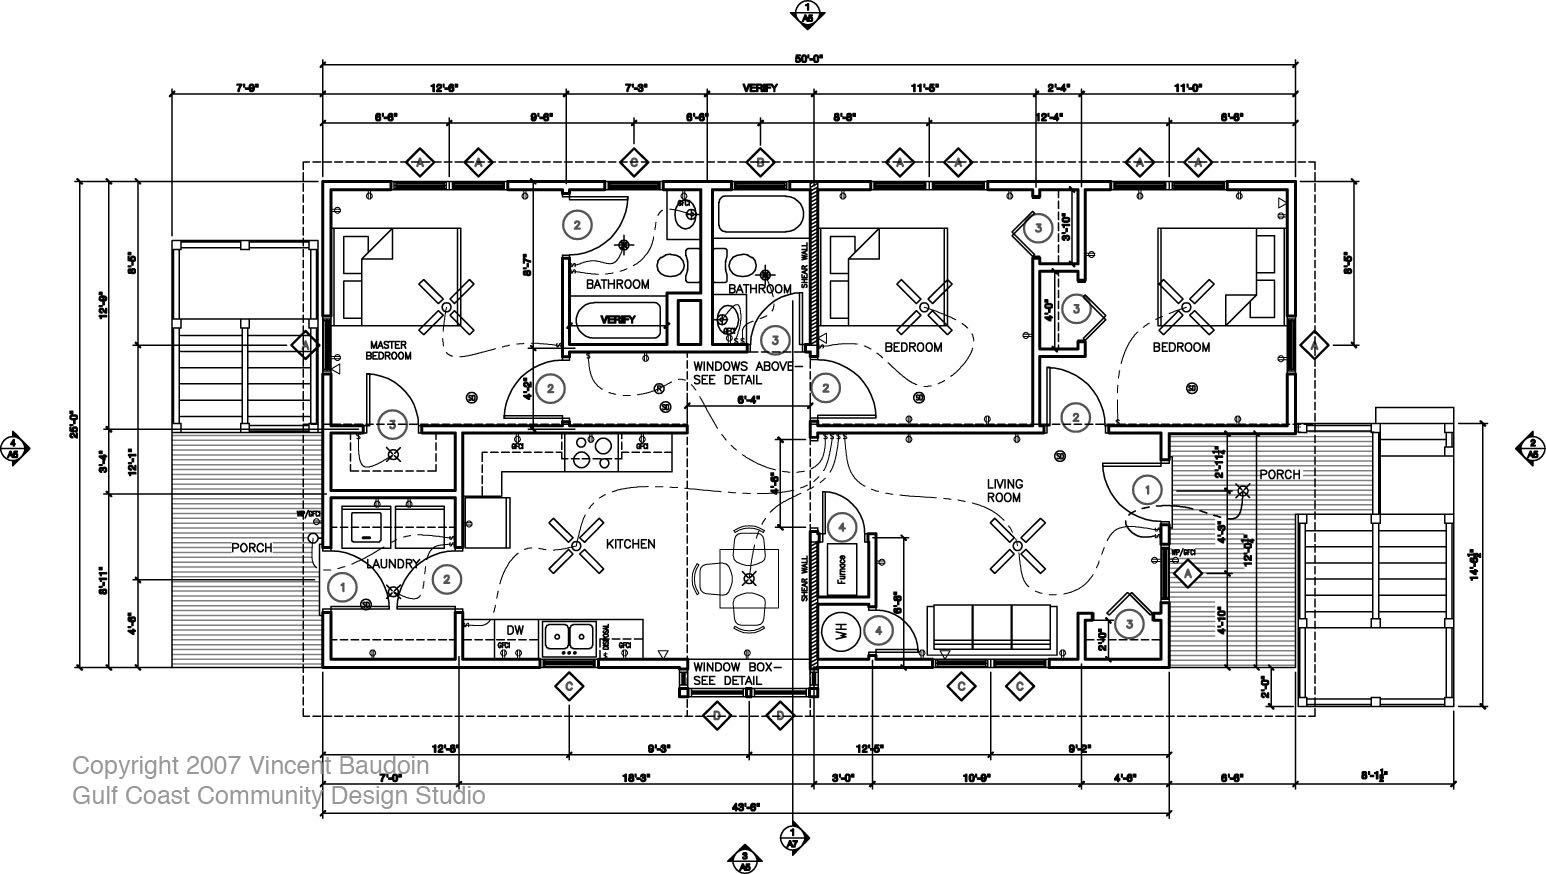 Residential house plans floor plans for Residential home plans